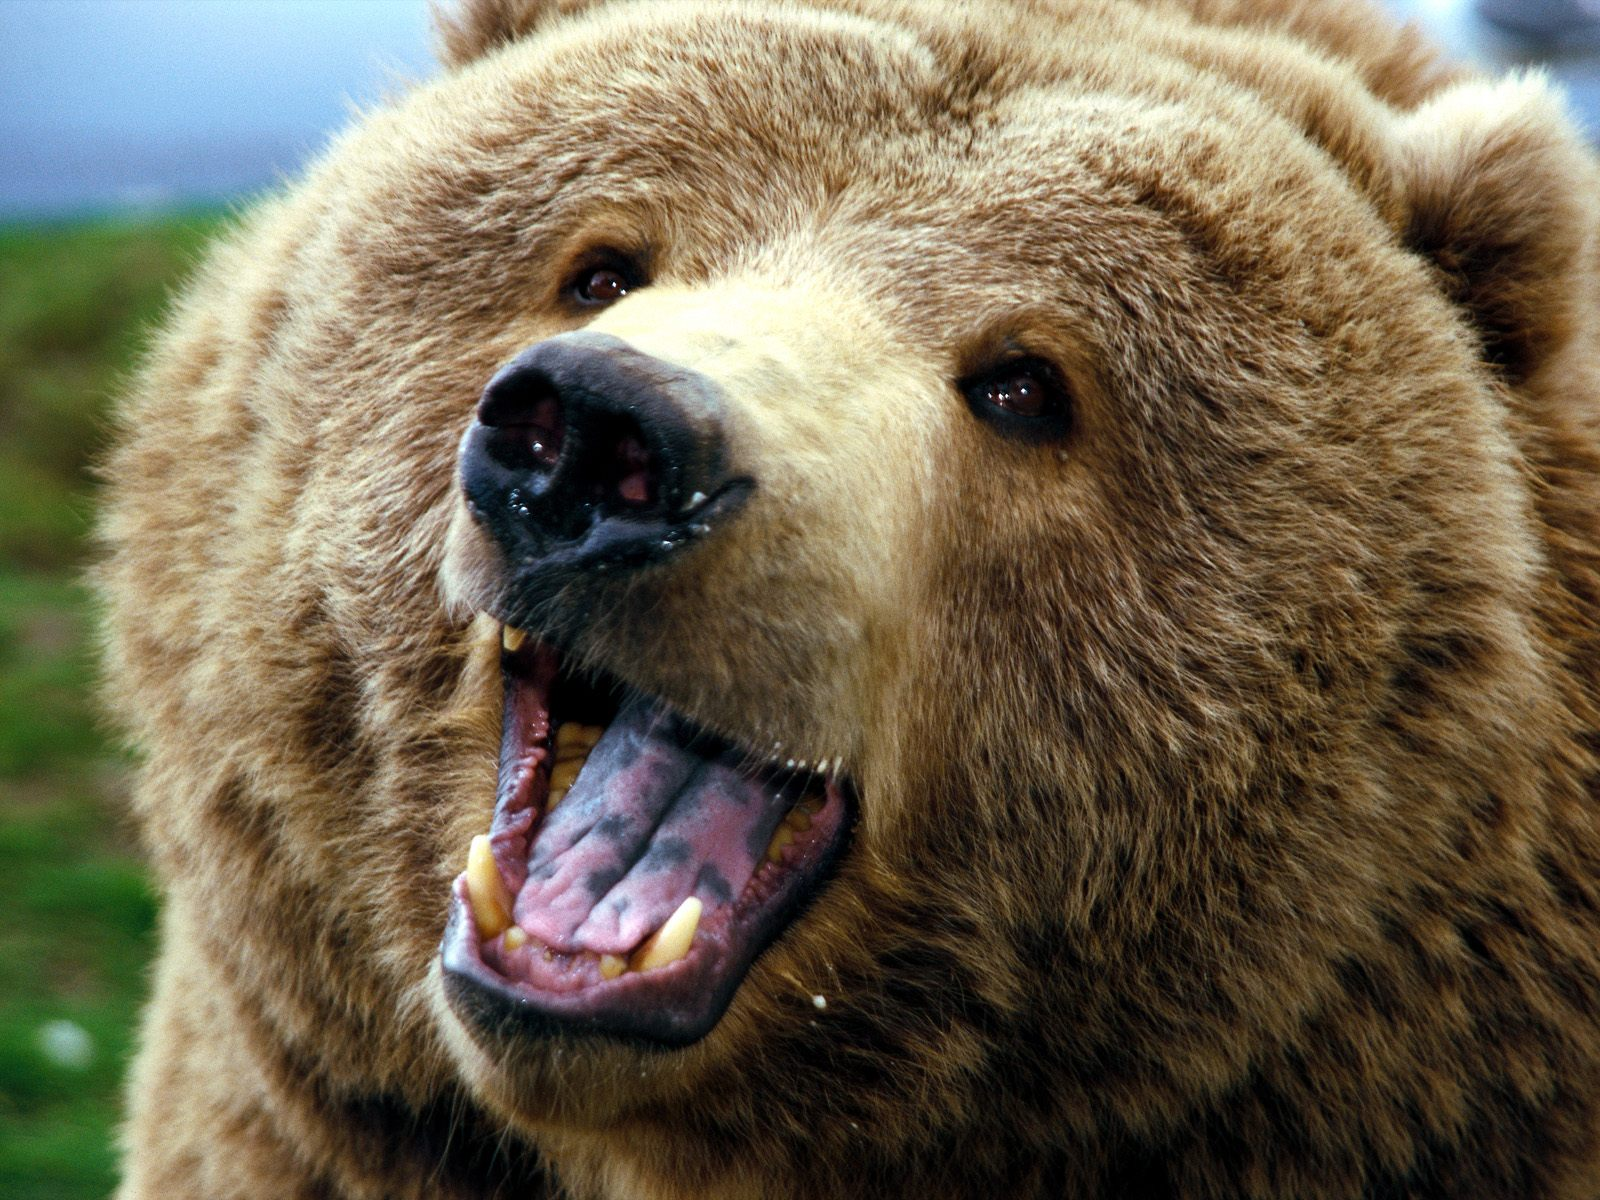 Bear Pictures Brown Bear - HD Animal Wallpapers